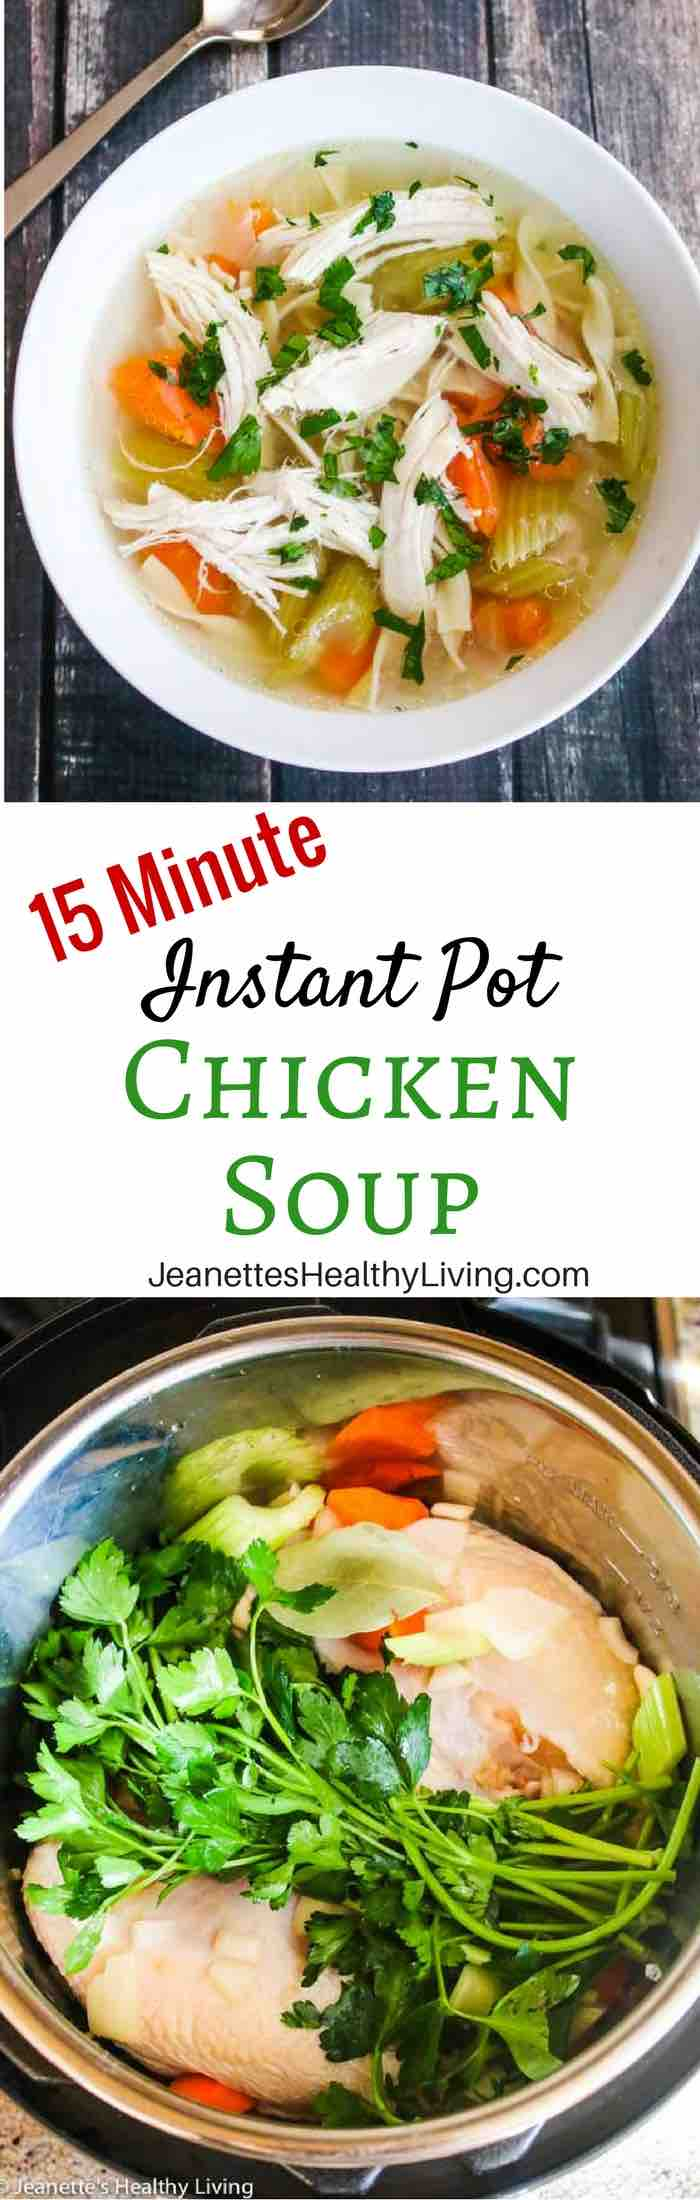 Instant Pot Homemade Chicken Soup - 15 minutes to cook; freezable; any extra shredded cooked chicken can be used in recipes using leftover chicken